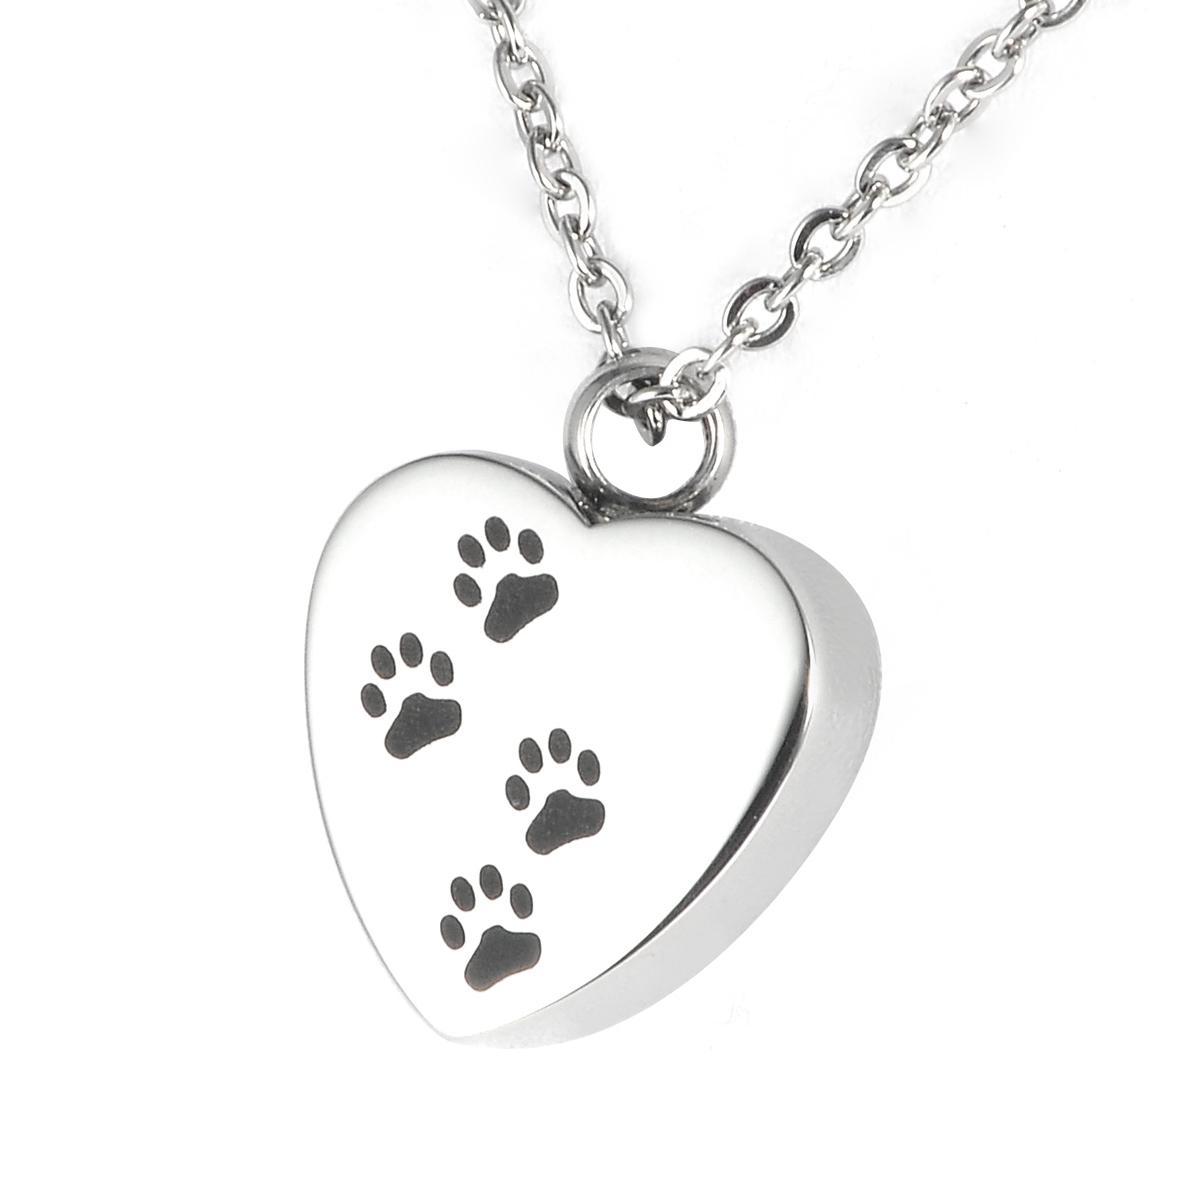 sterling dog necklace bling silver srn jewelry cut pendant out heart bone